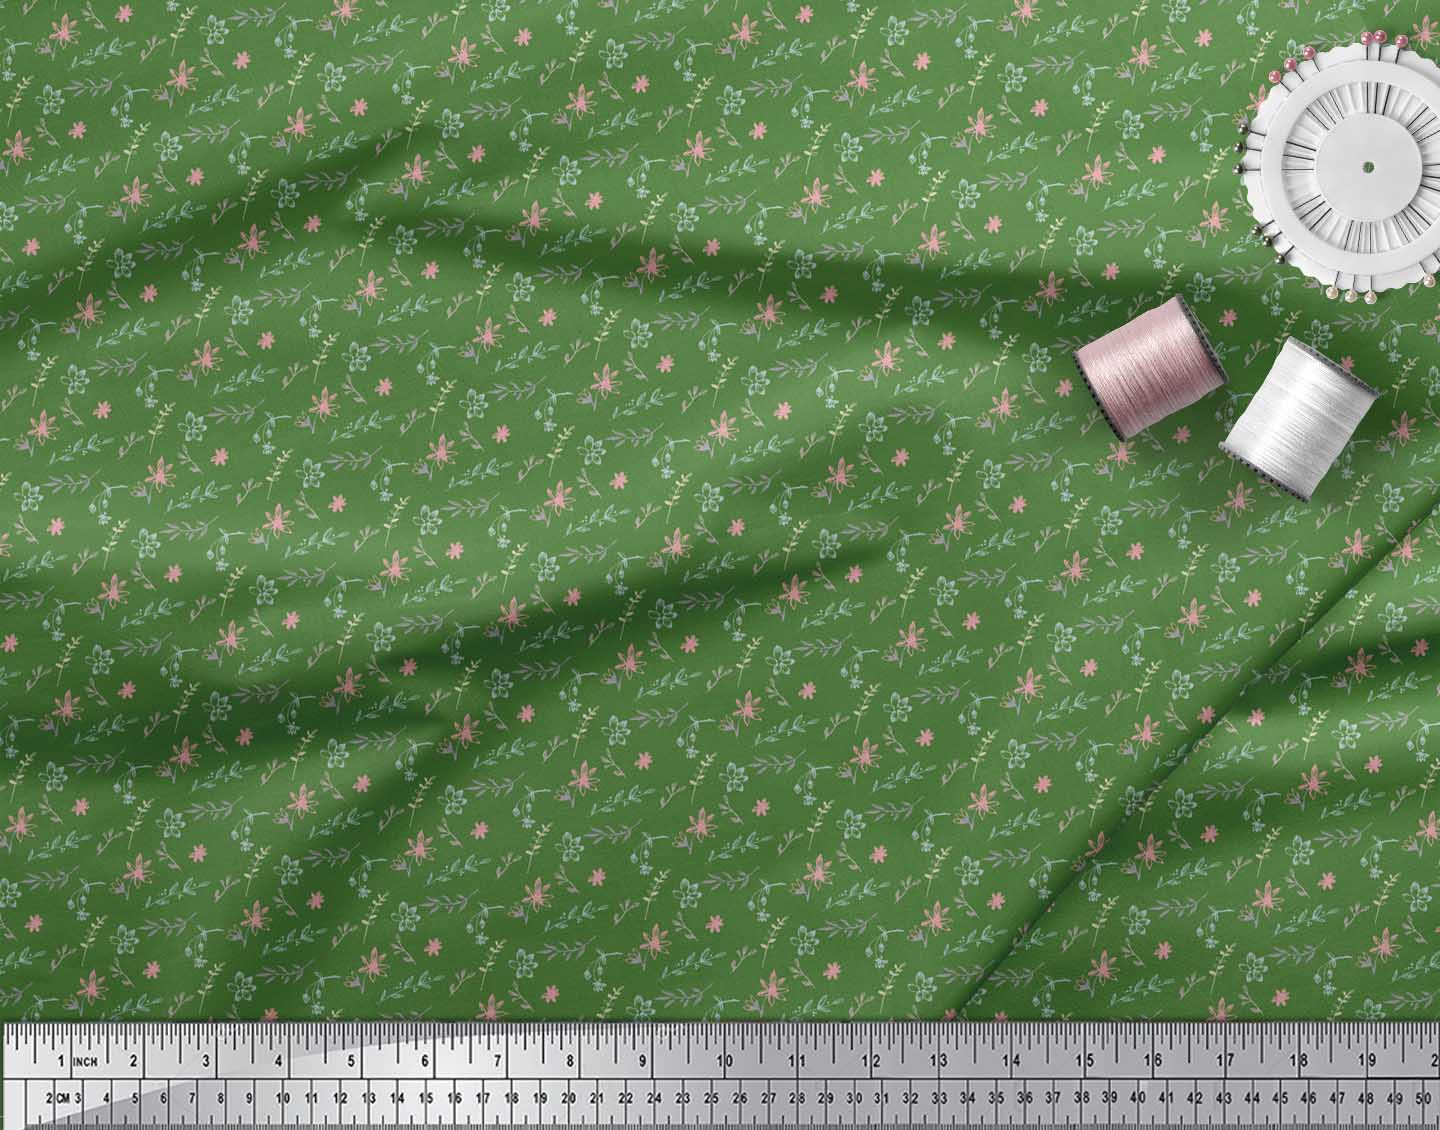 Soimoi-Green-Cotton-Poplin-Fabric-Floral-amp-Leaves-Print-Fabric-by-5Ik thumbnail 4